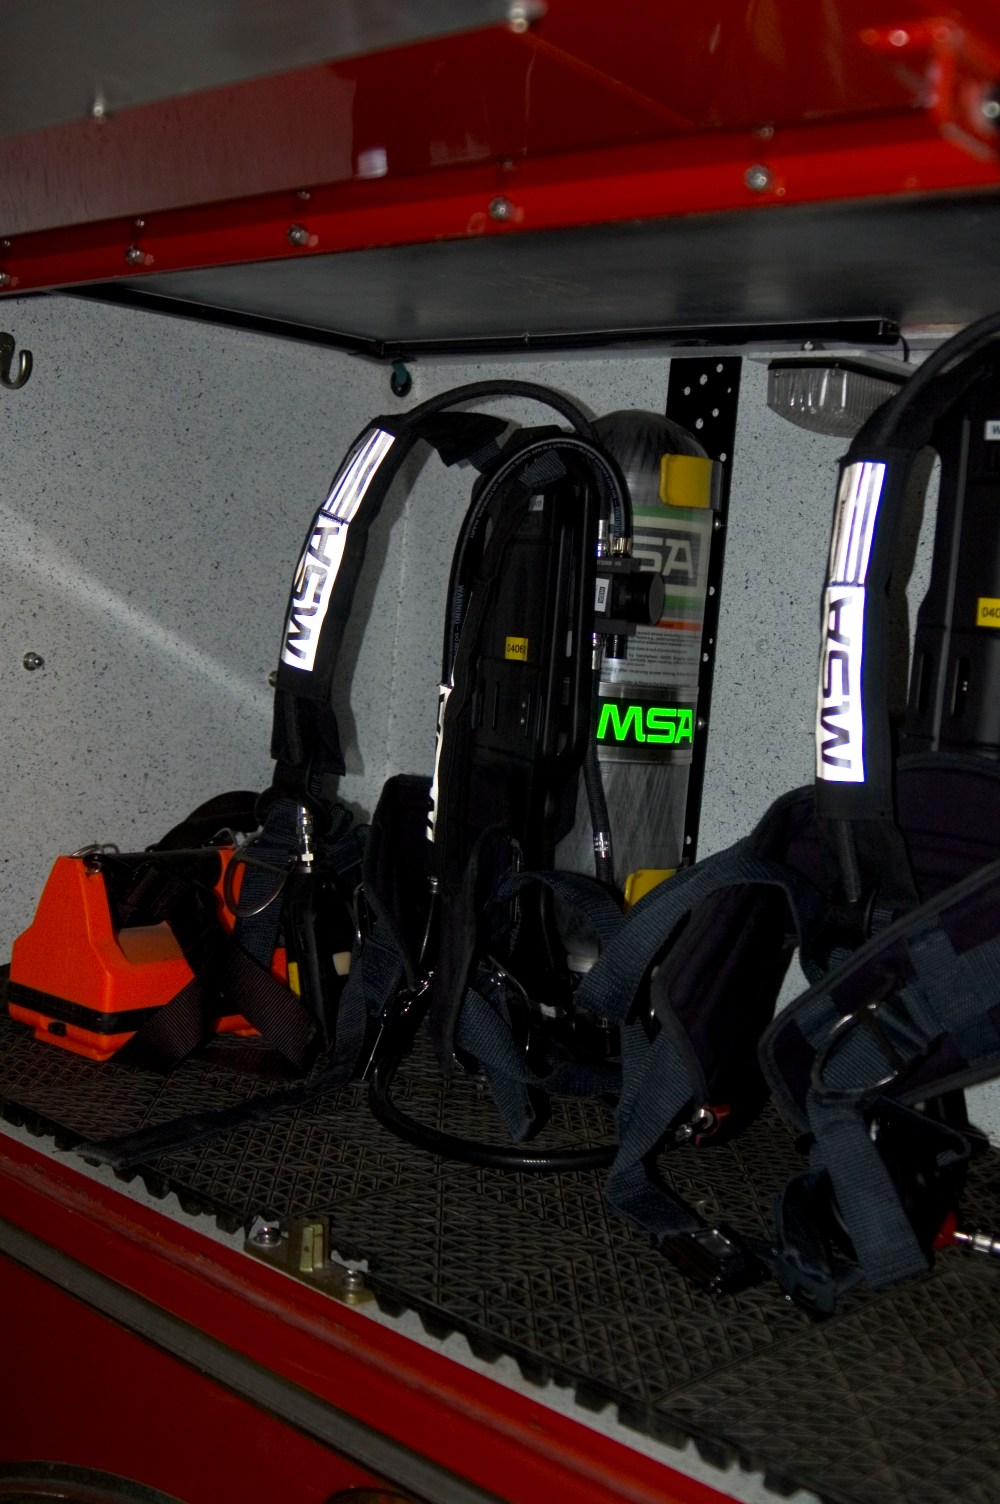 medium resolution of scba packs carried on a rack in a firetruck